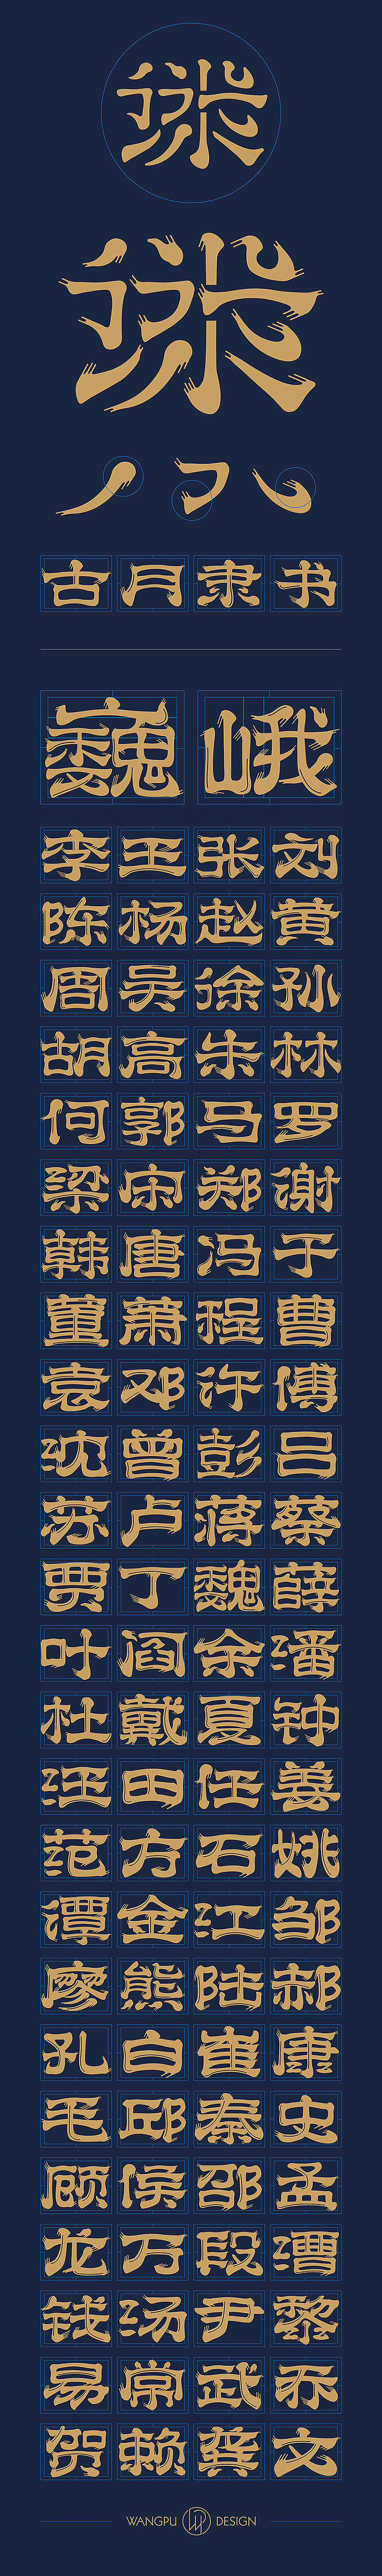 Ancient moon script chinese font